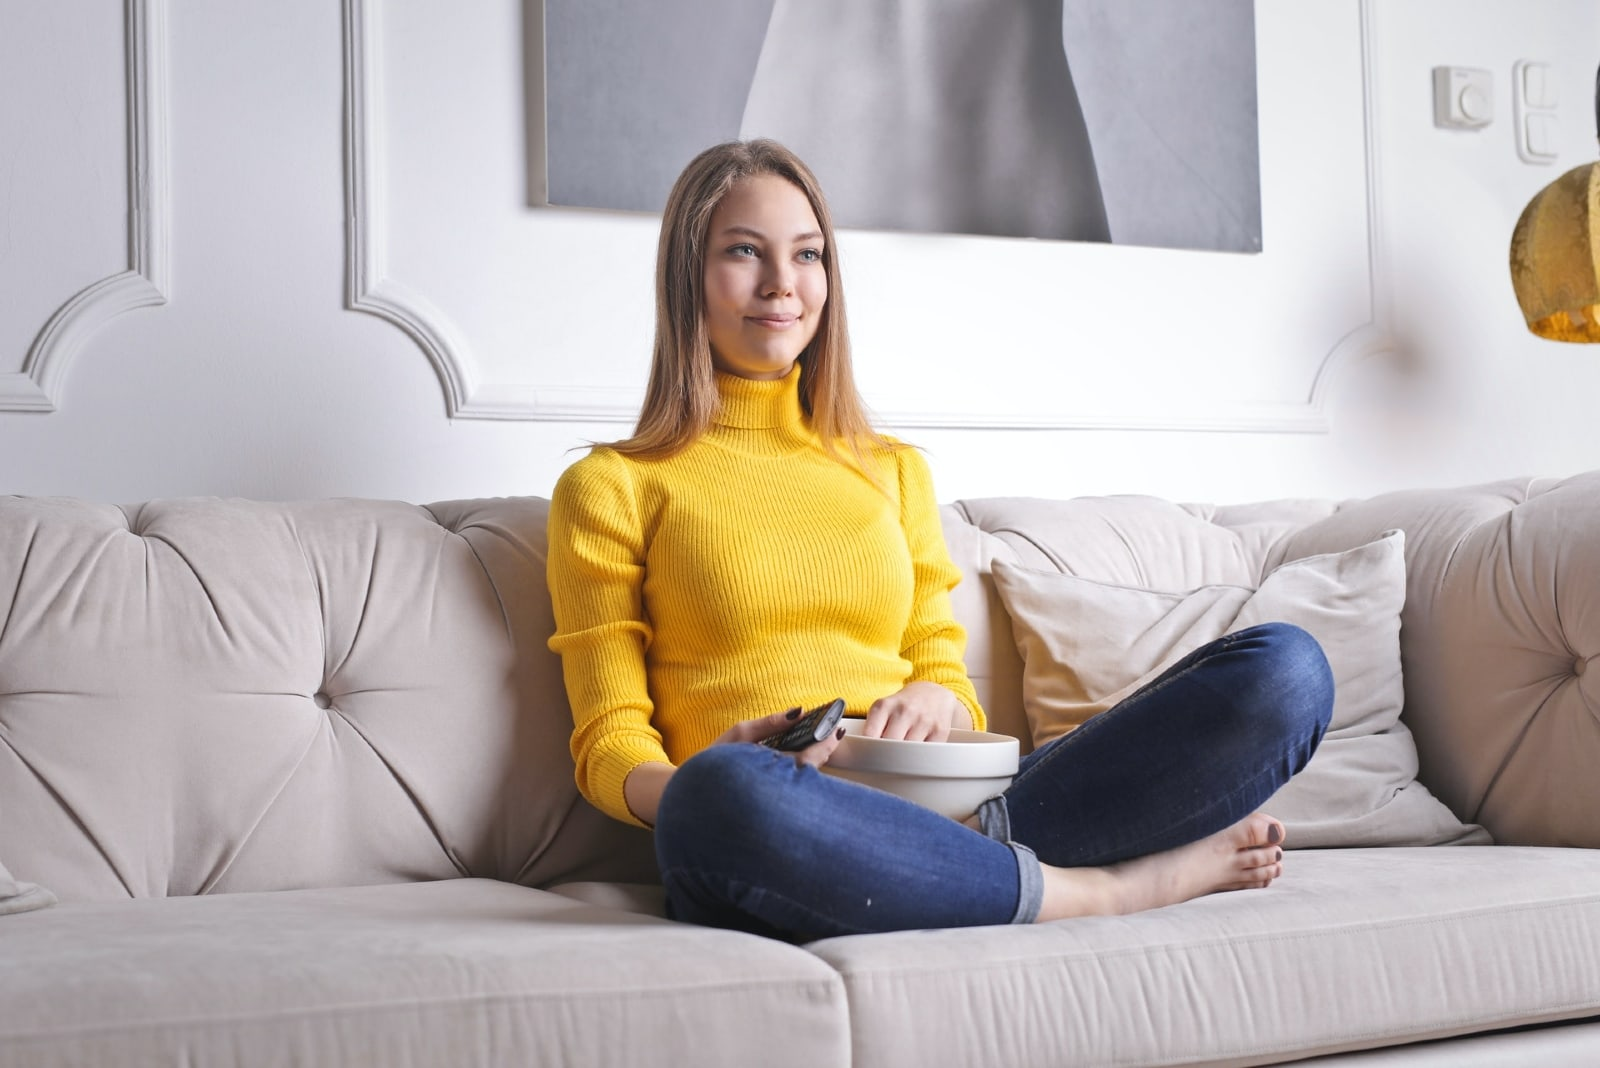 woman watching tv while sitting on sofa